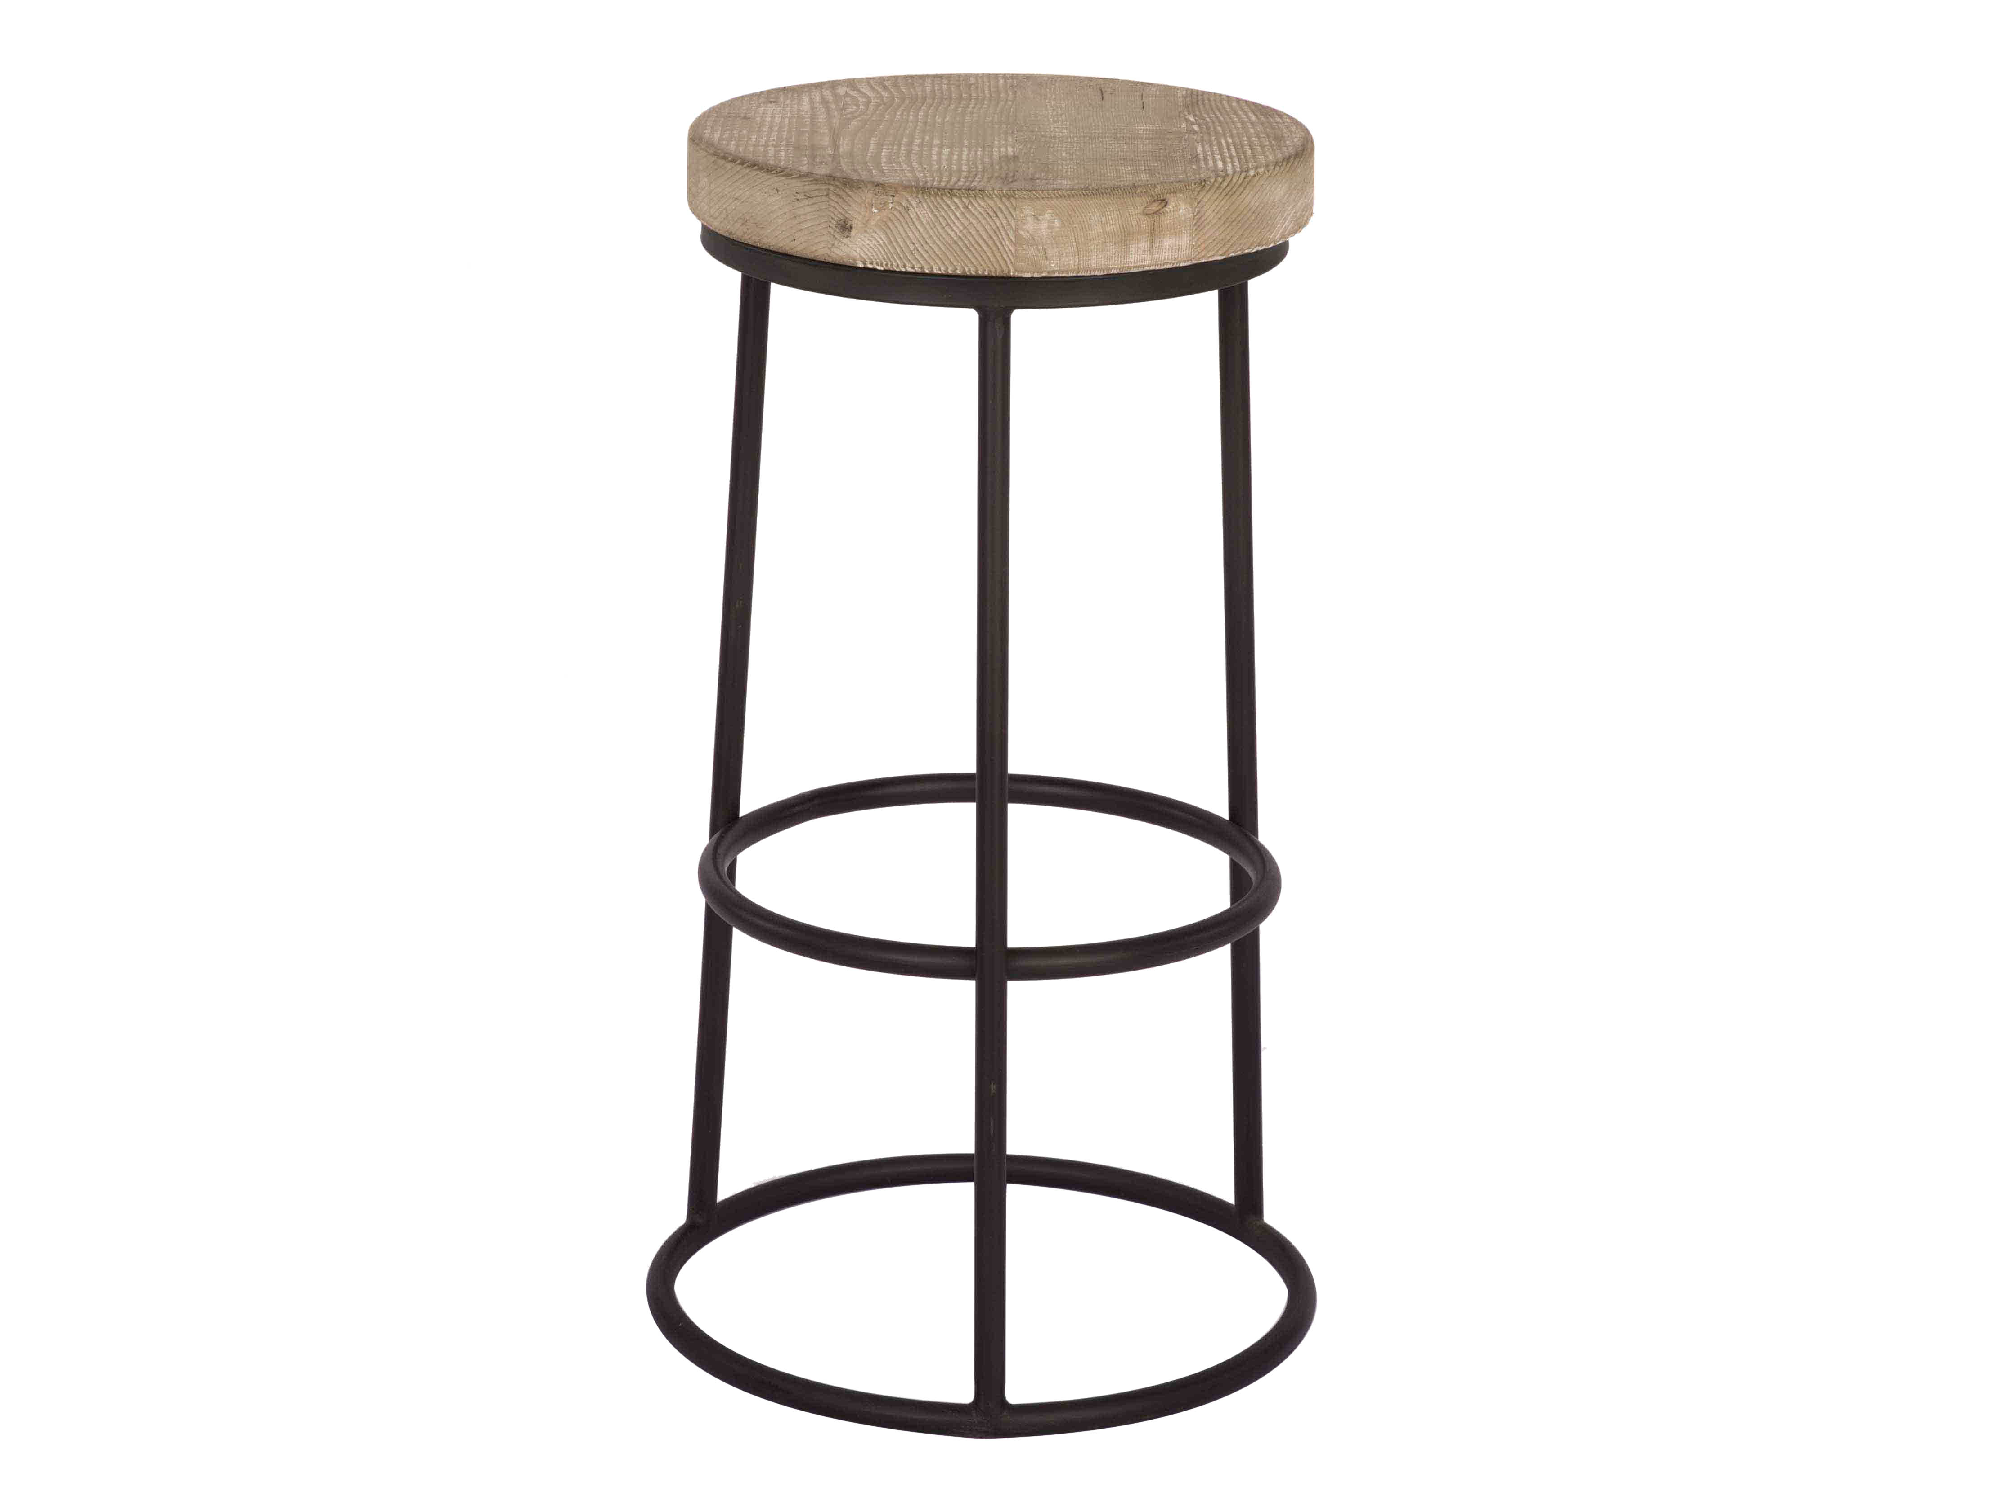 PONCE WOODEN BARSTOOL